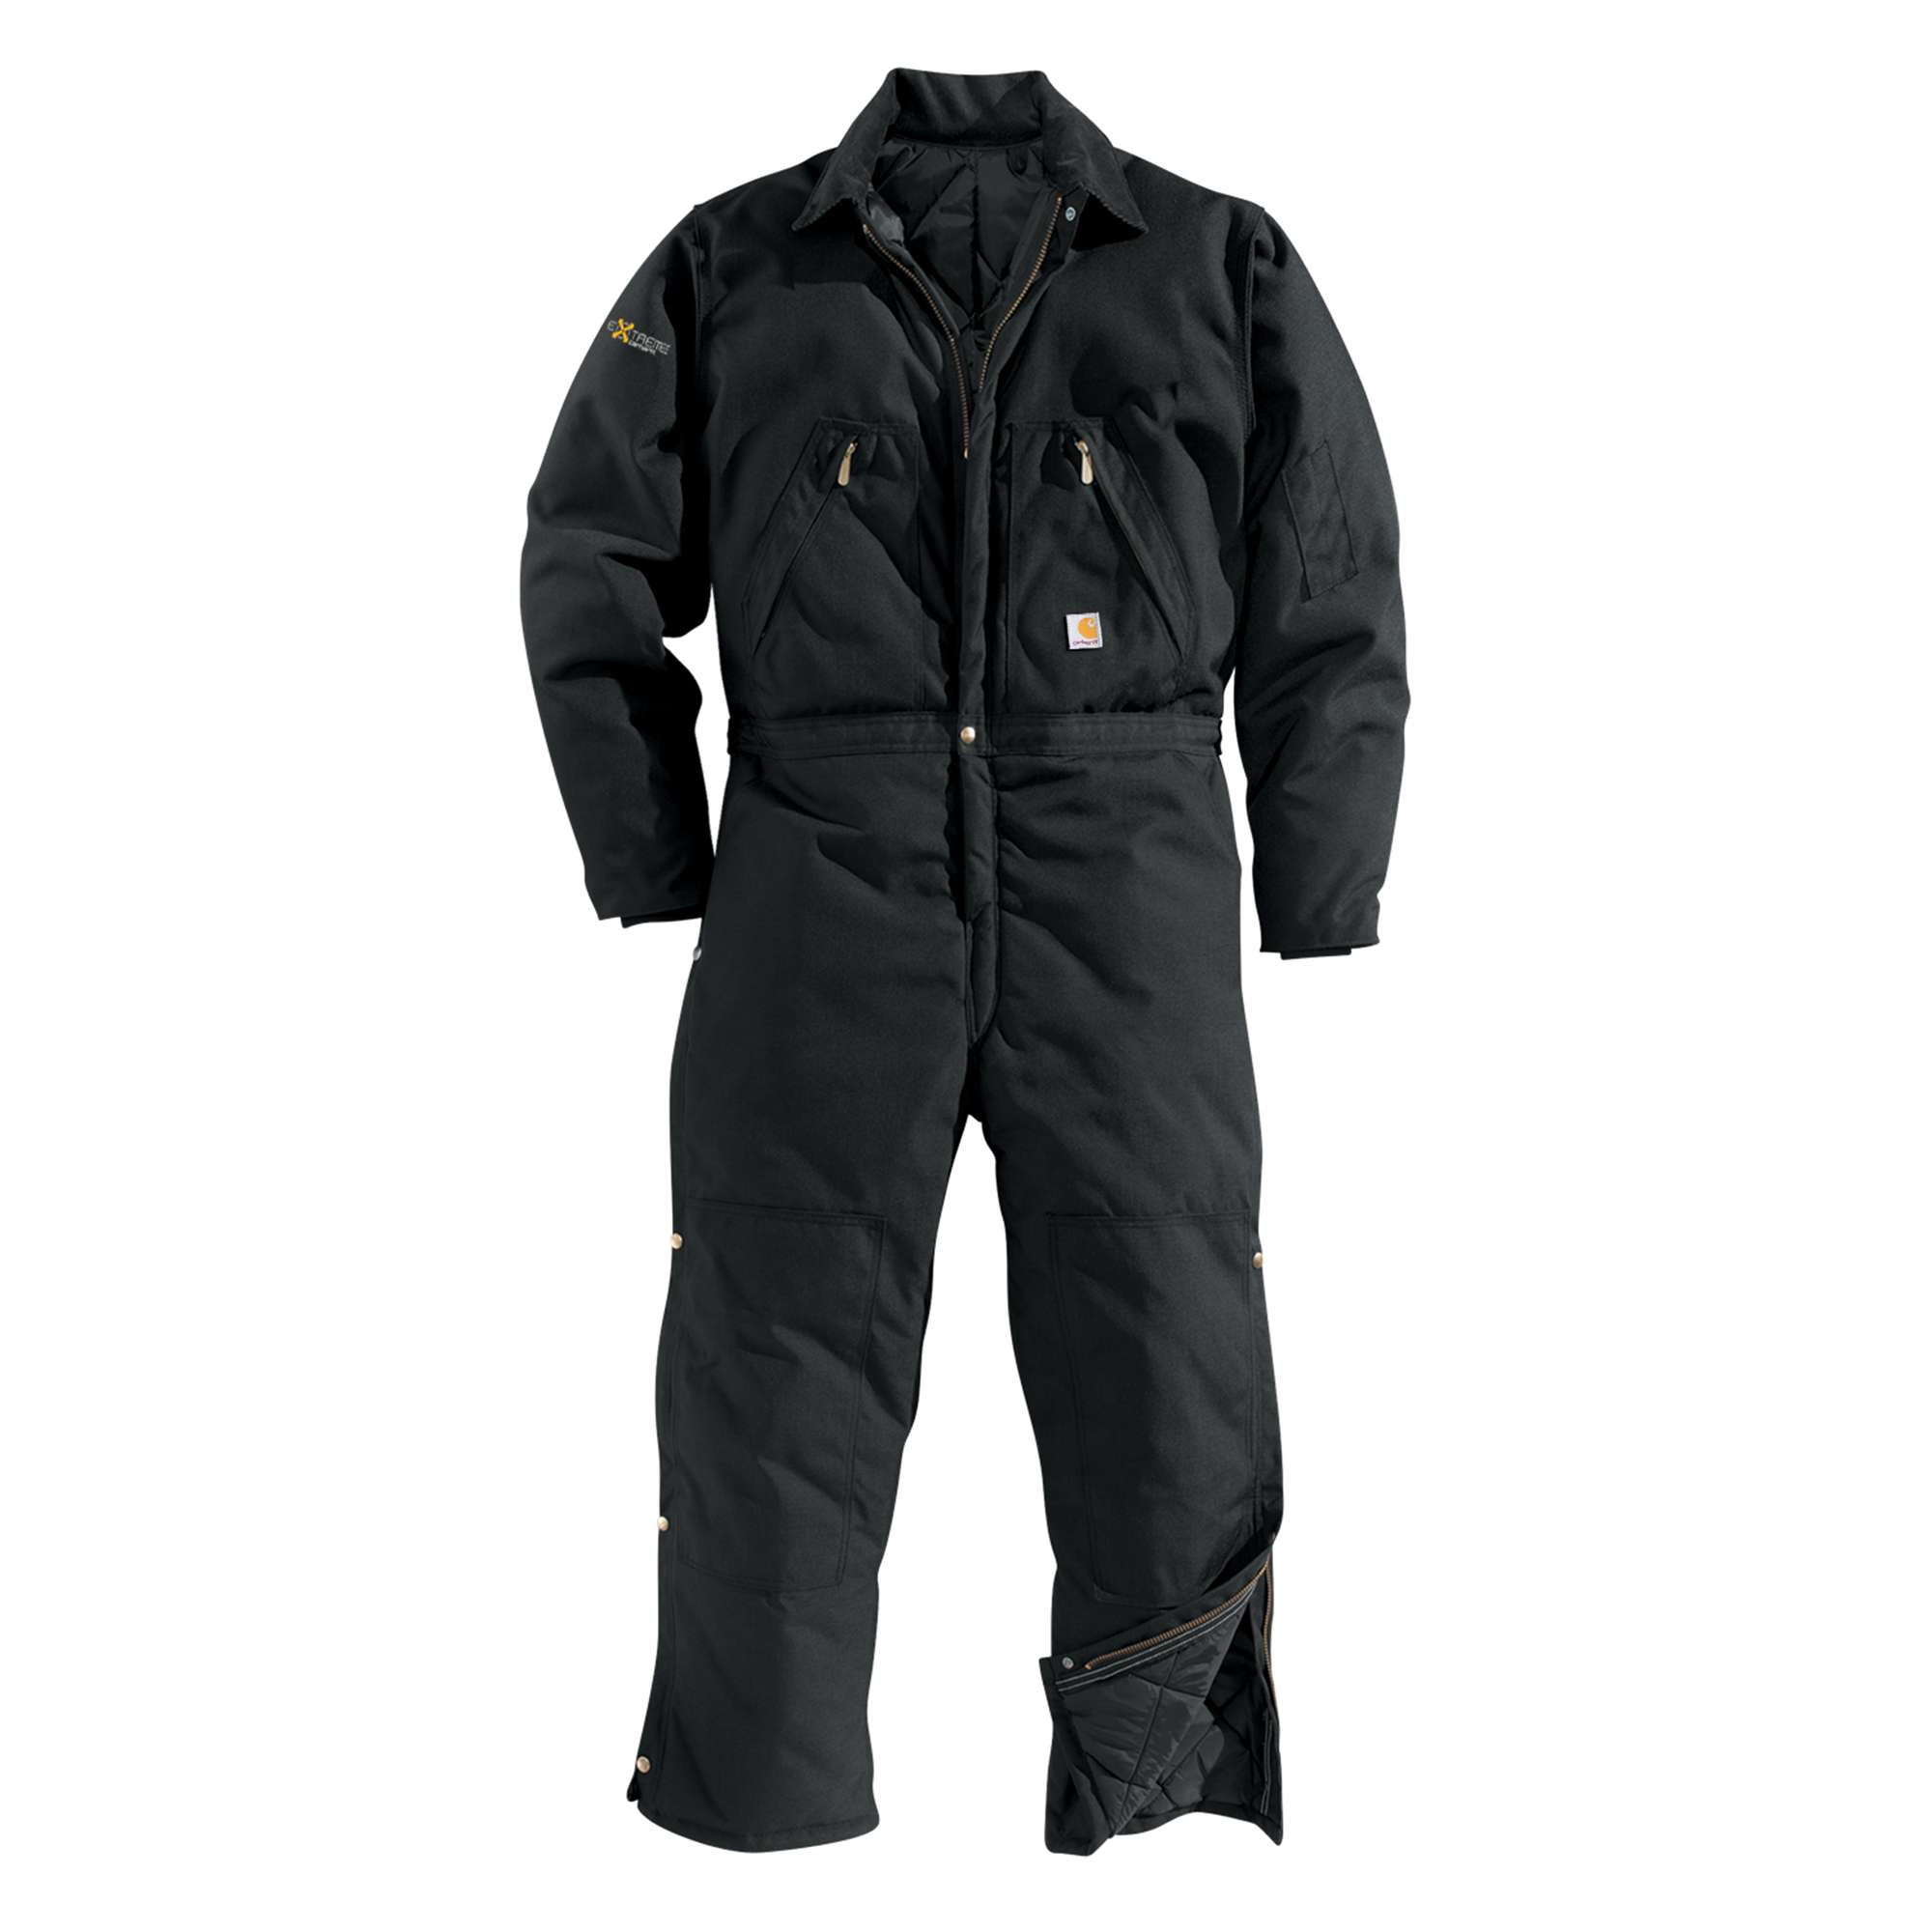 MEN'S YUKON EXTREMES® ARCTIC QUILT-LINED COVERALL